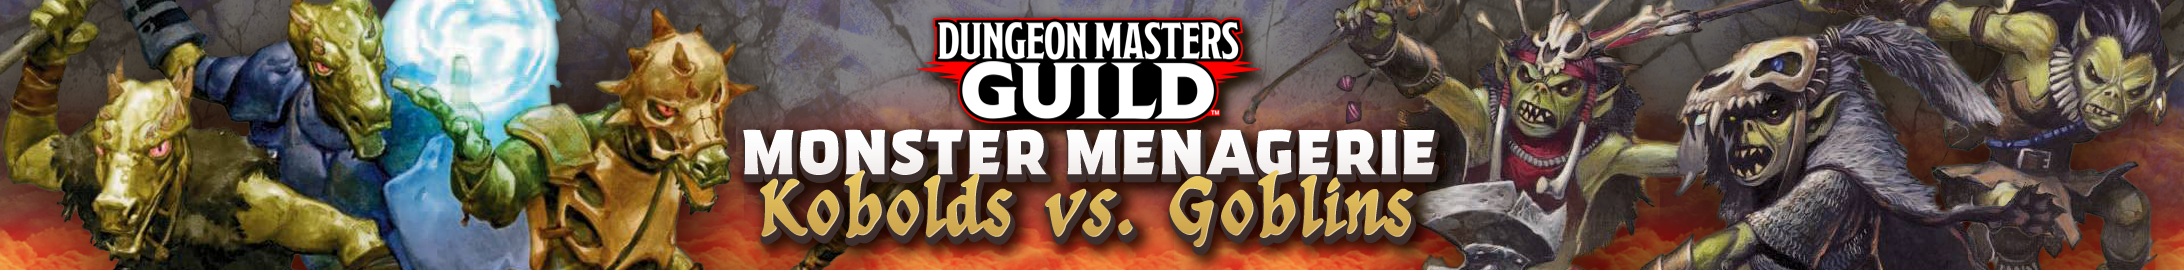 Monster Menagerie: Kobolds vs Goblins @ Dungeon Masters Guild